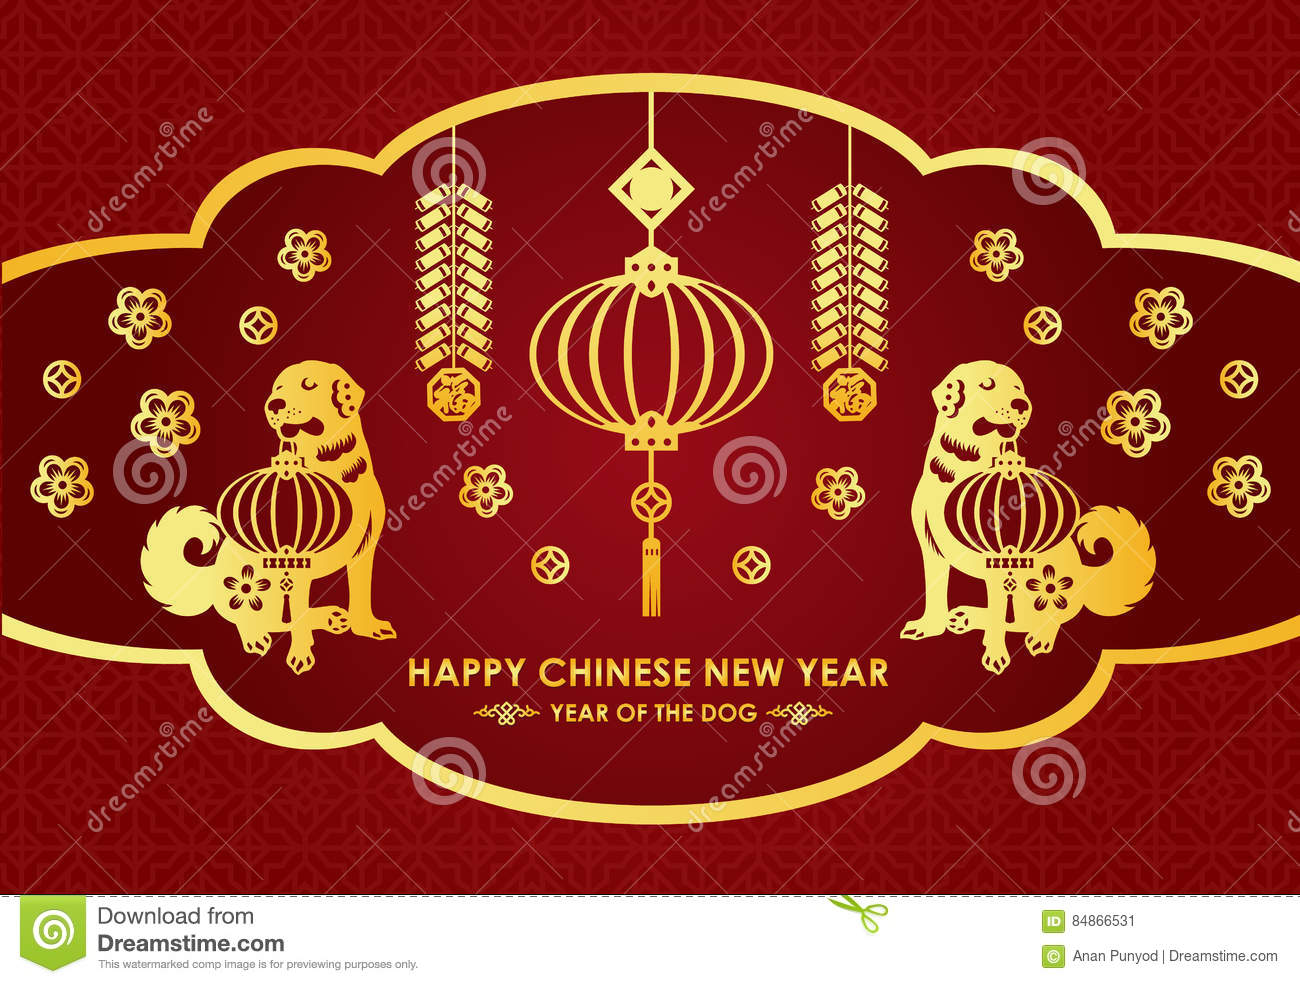 Happy chinese new year card is lanterns firecracker twin gold happy chinese new year card is lanterns firecracker twin gold dog and chinese word mean blessing kristyandbryce Choice Image